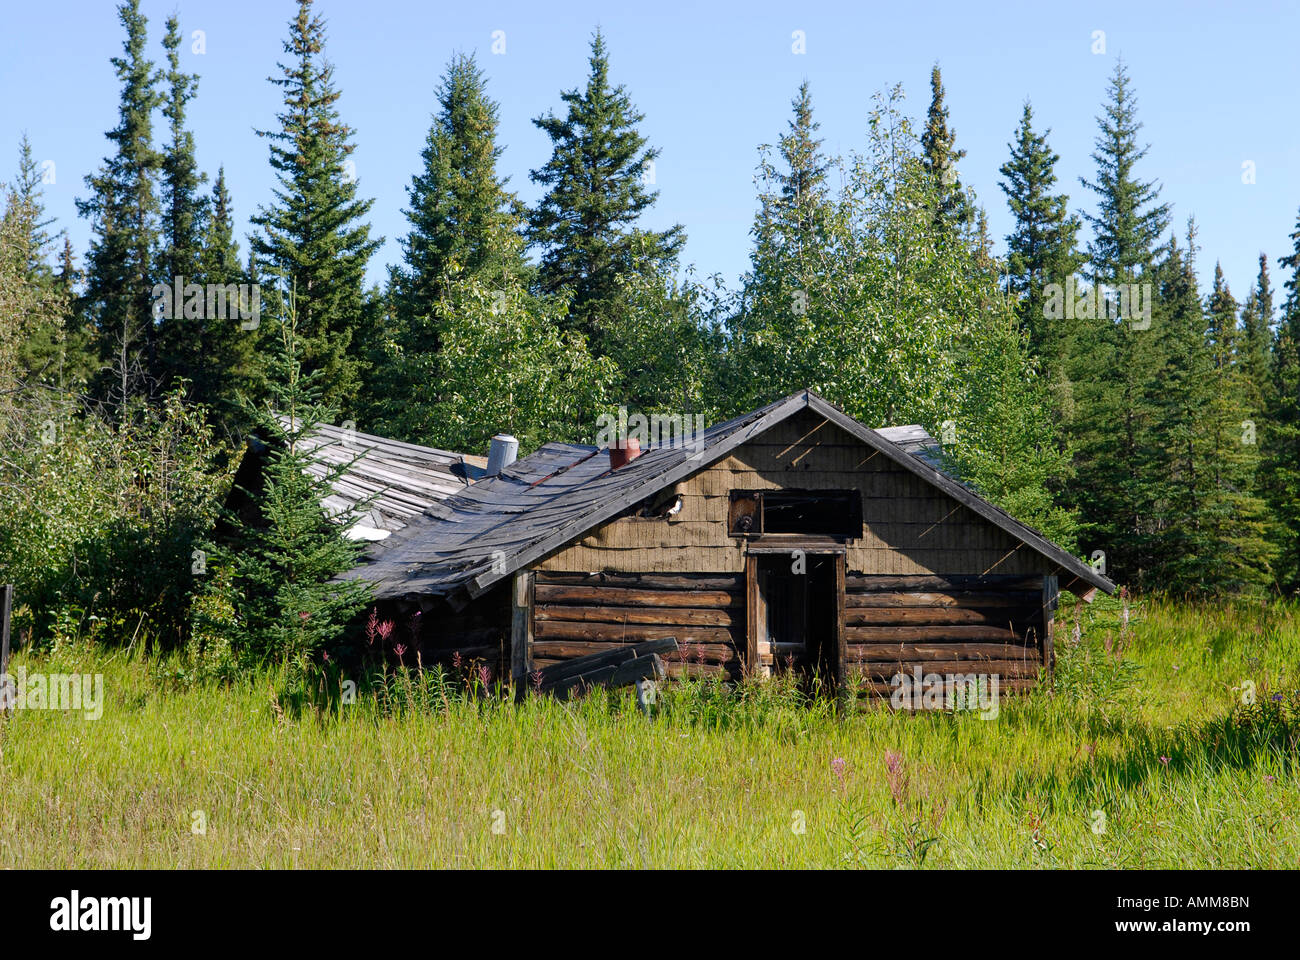 copper center Search 3 copper center alaska properties for sale, including homes on farms, ranches, recreational property, hunting property and more | country homes of america.